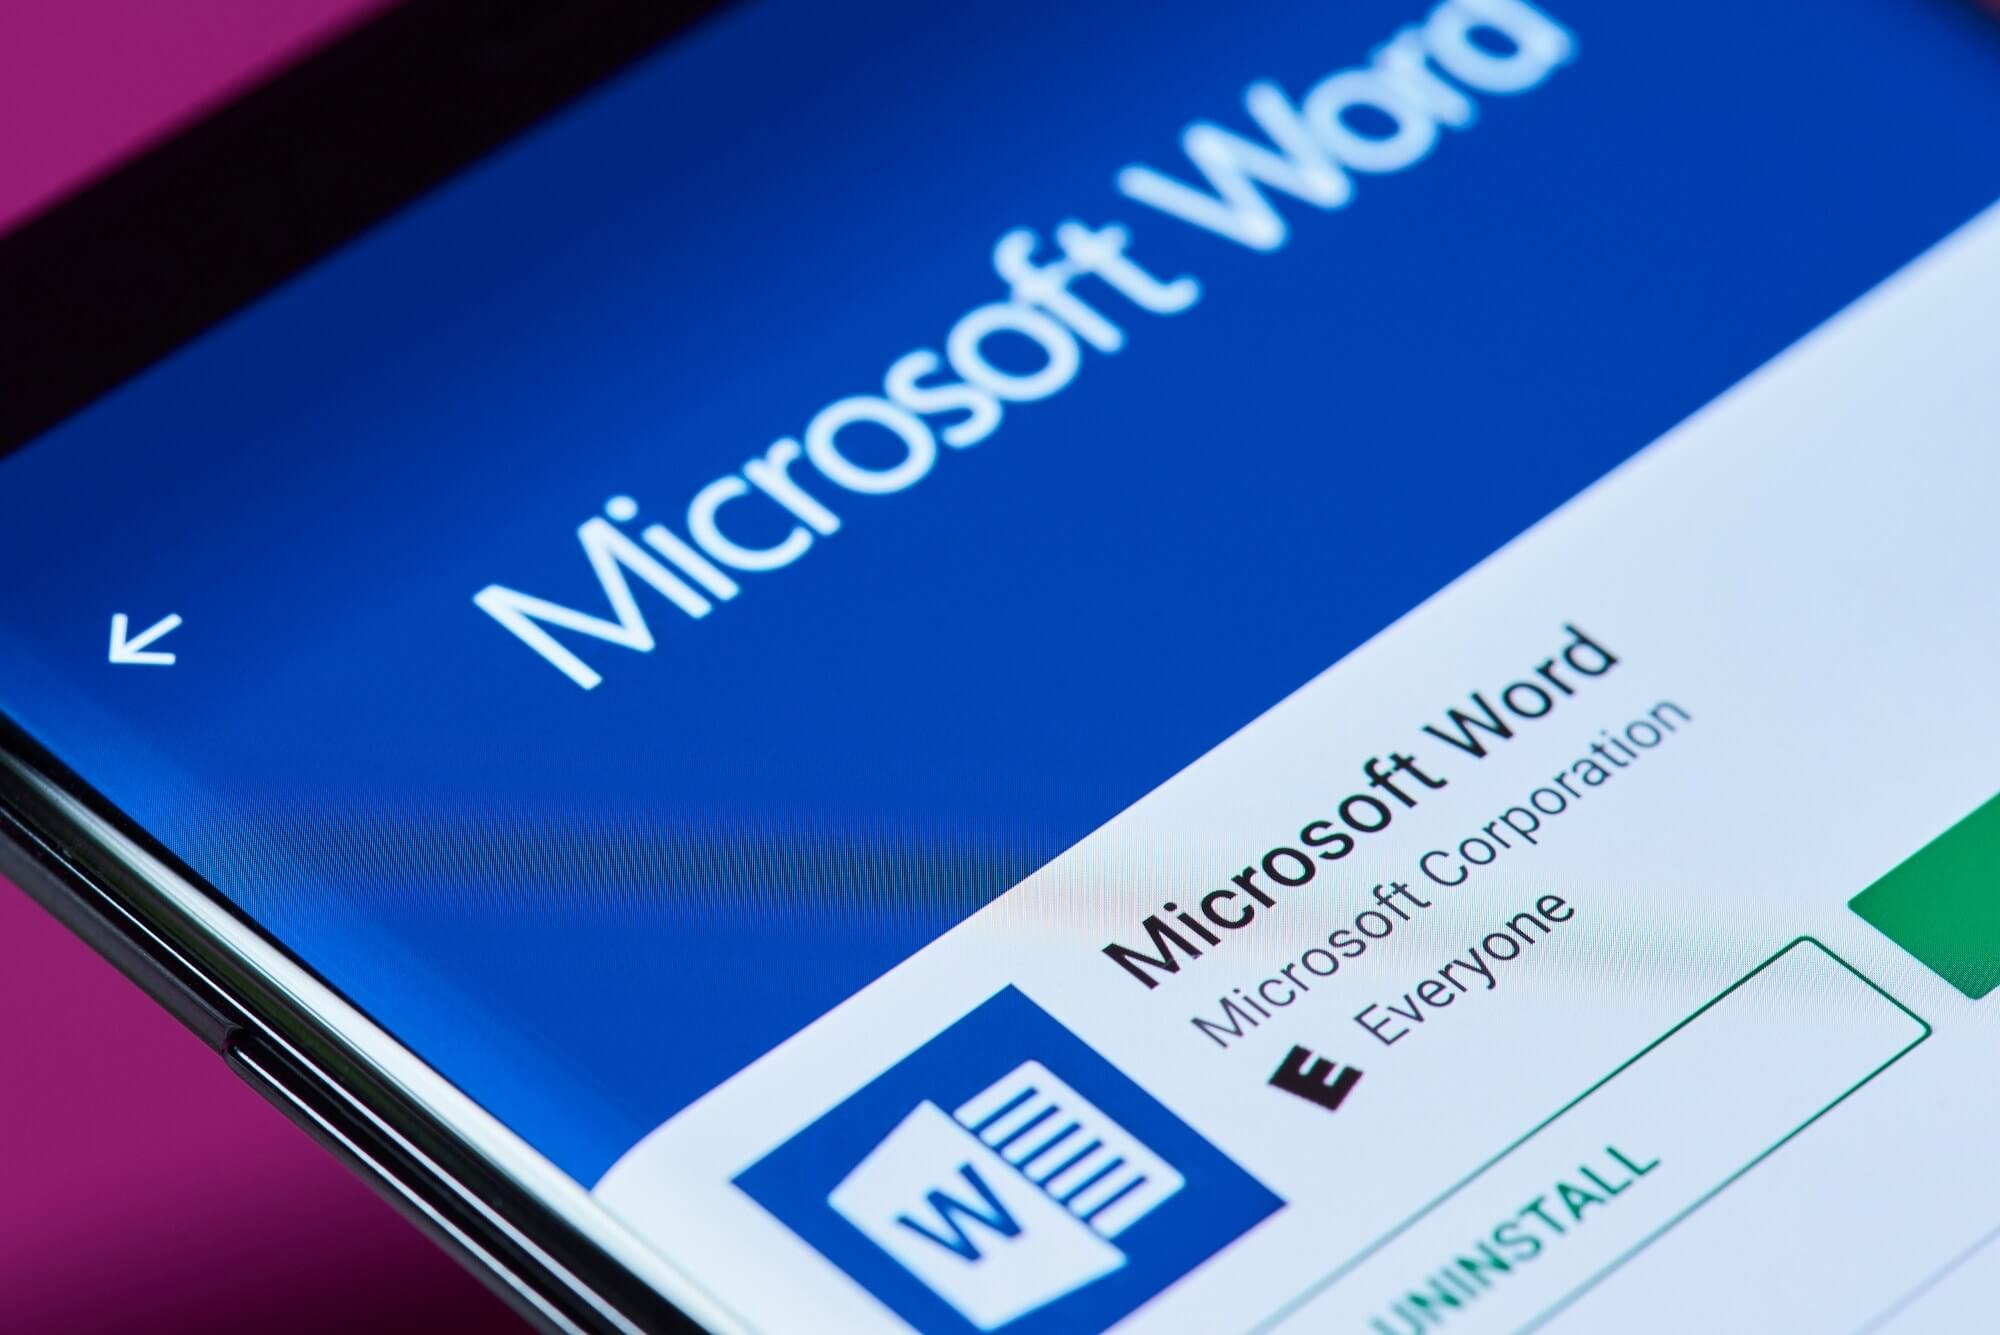 Microsoft Word has now been installed over one billion times